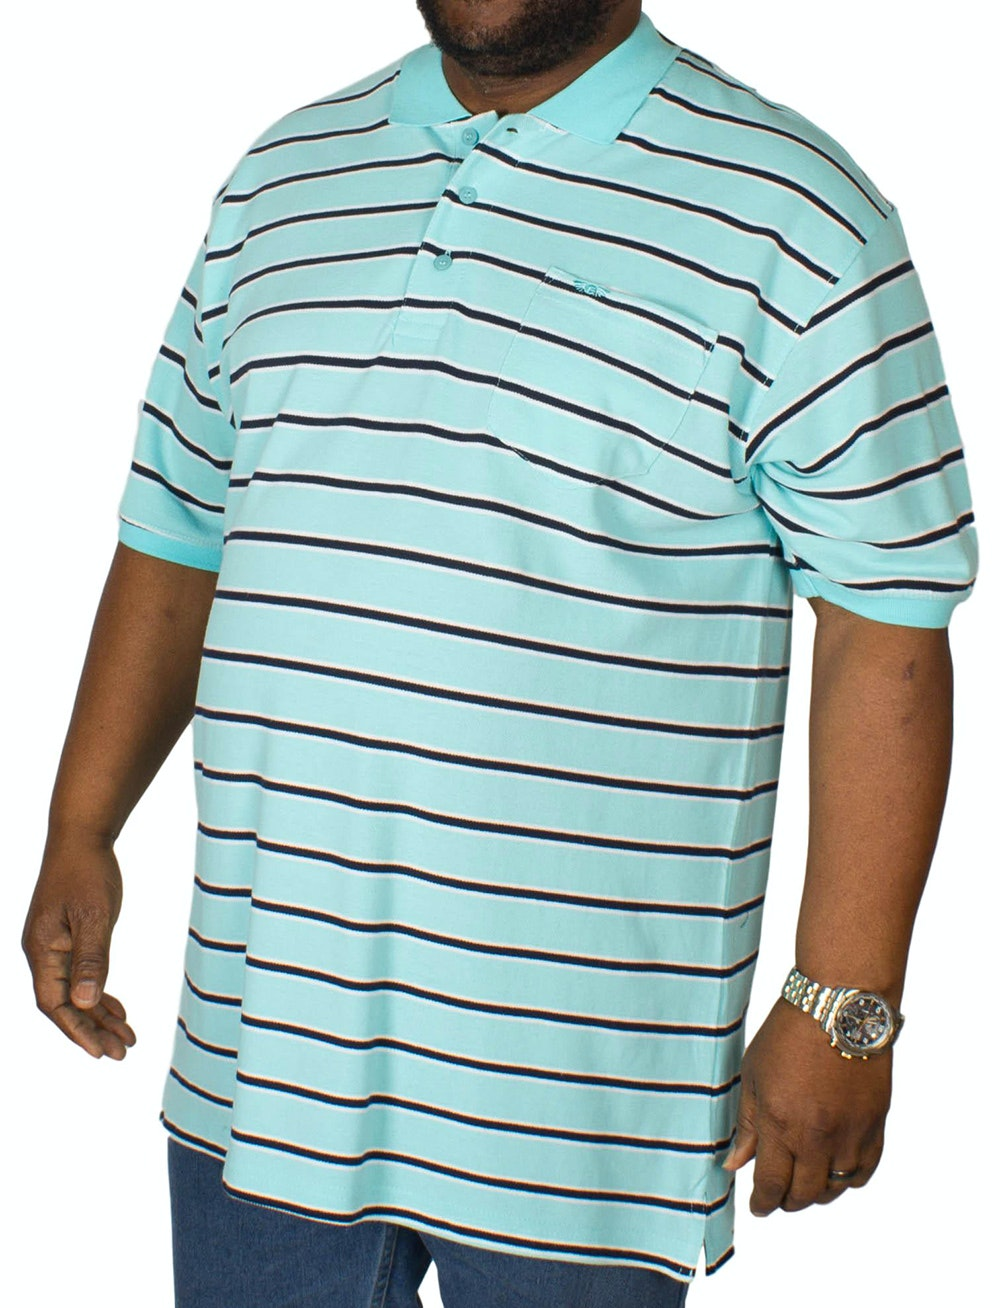 KAM Forge Stripe Polo Shirt Turquoise